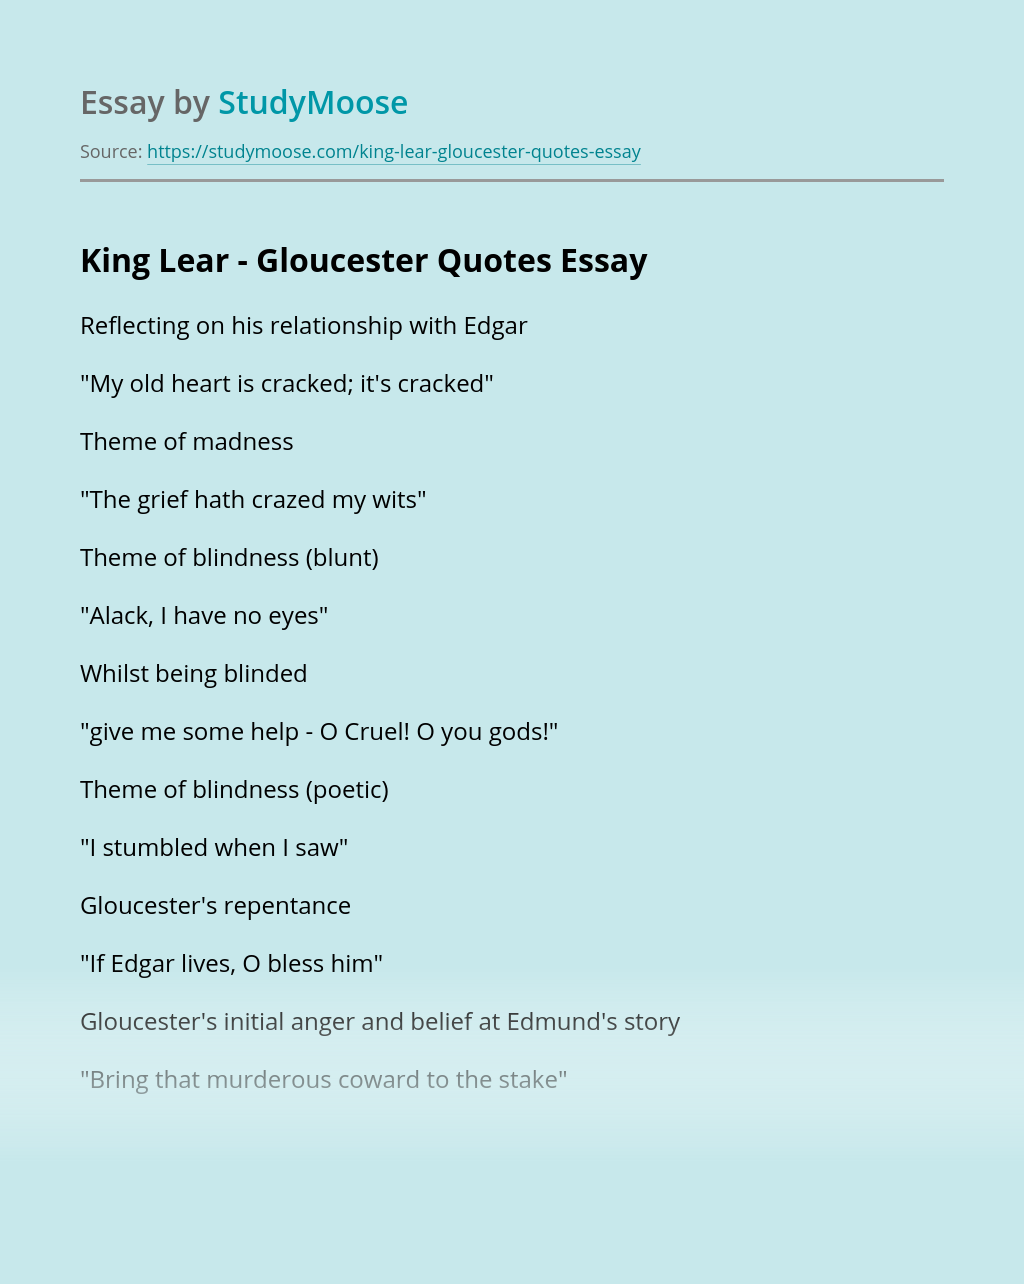 King Lear - Gloucester Quotes